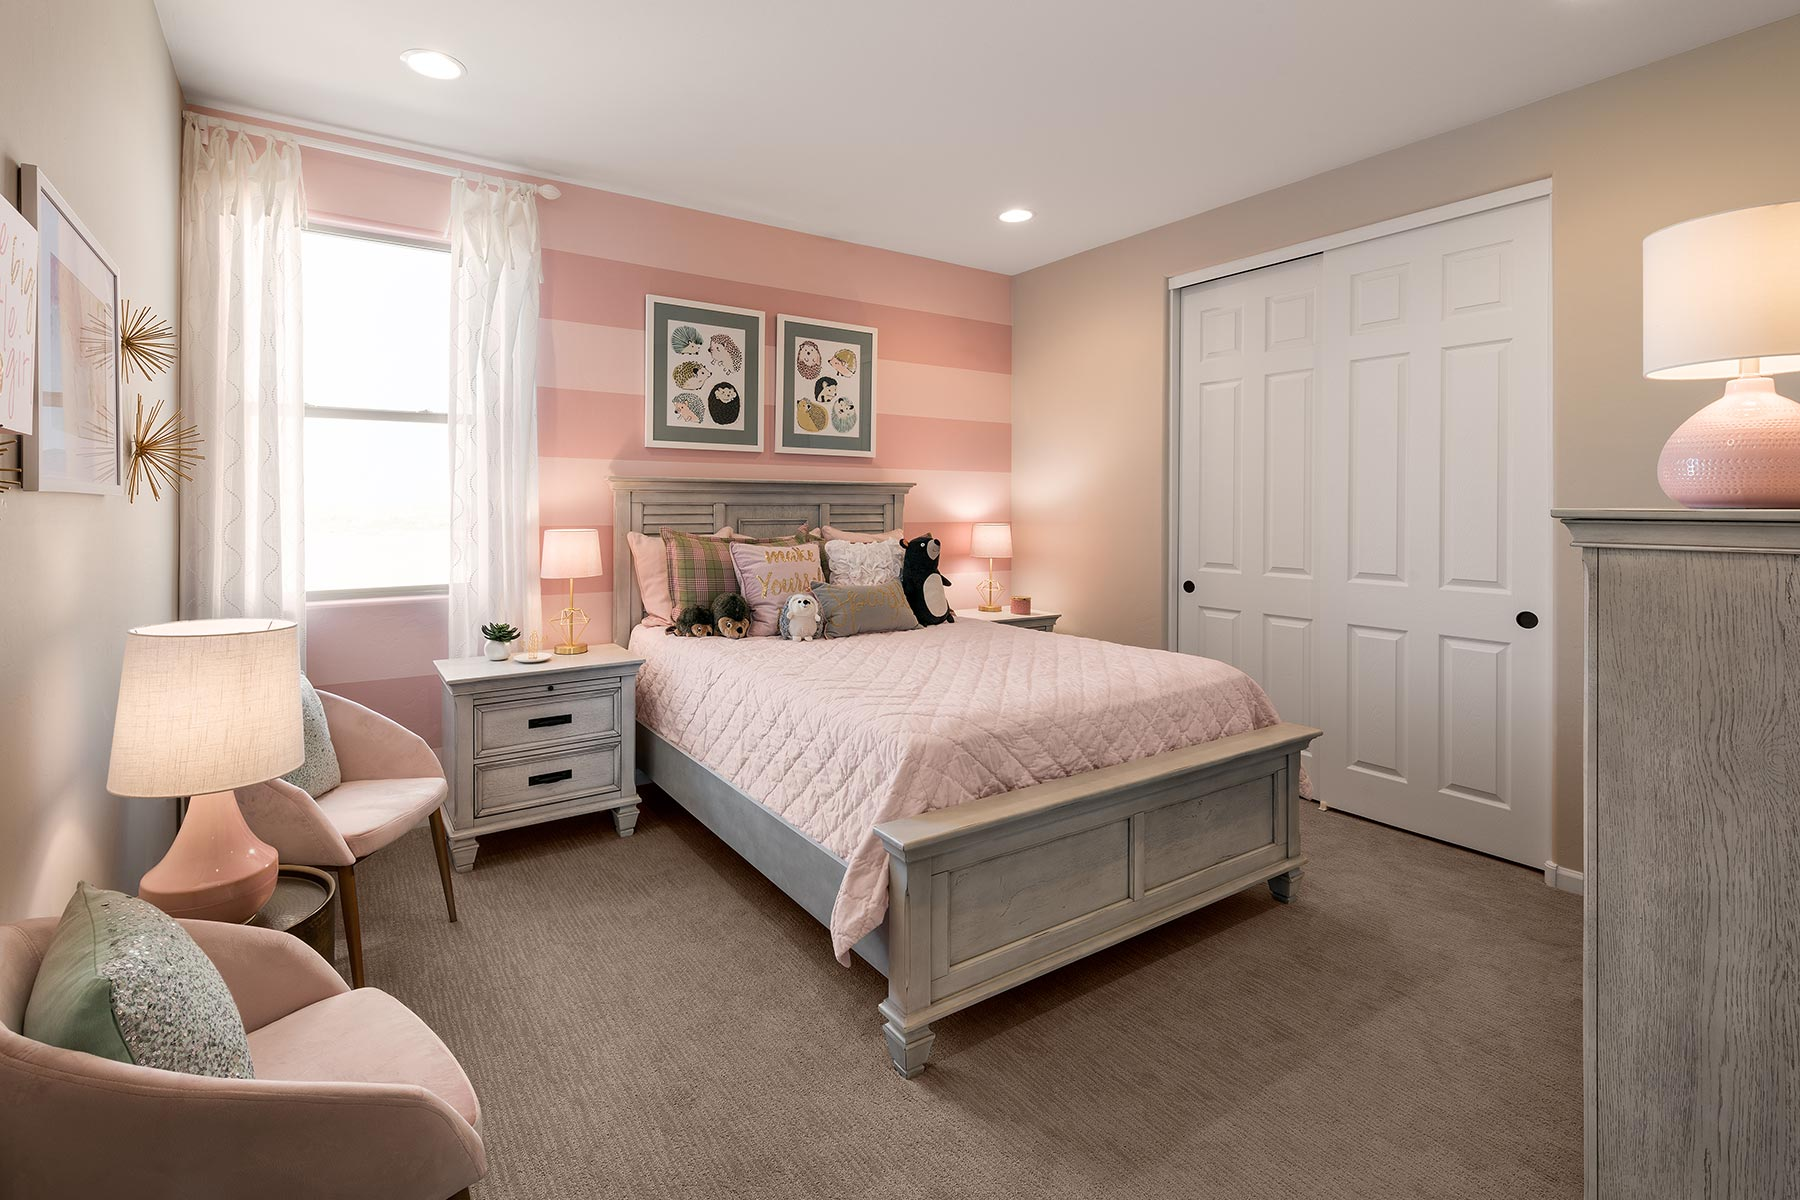 Mesquite Plan Bedroom at Saguaro Trails in Tucson Arizona by Mattamy Homes